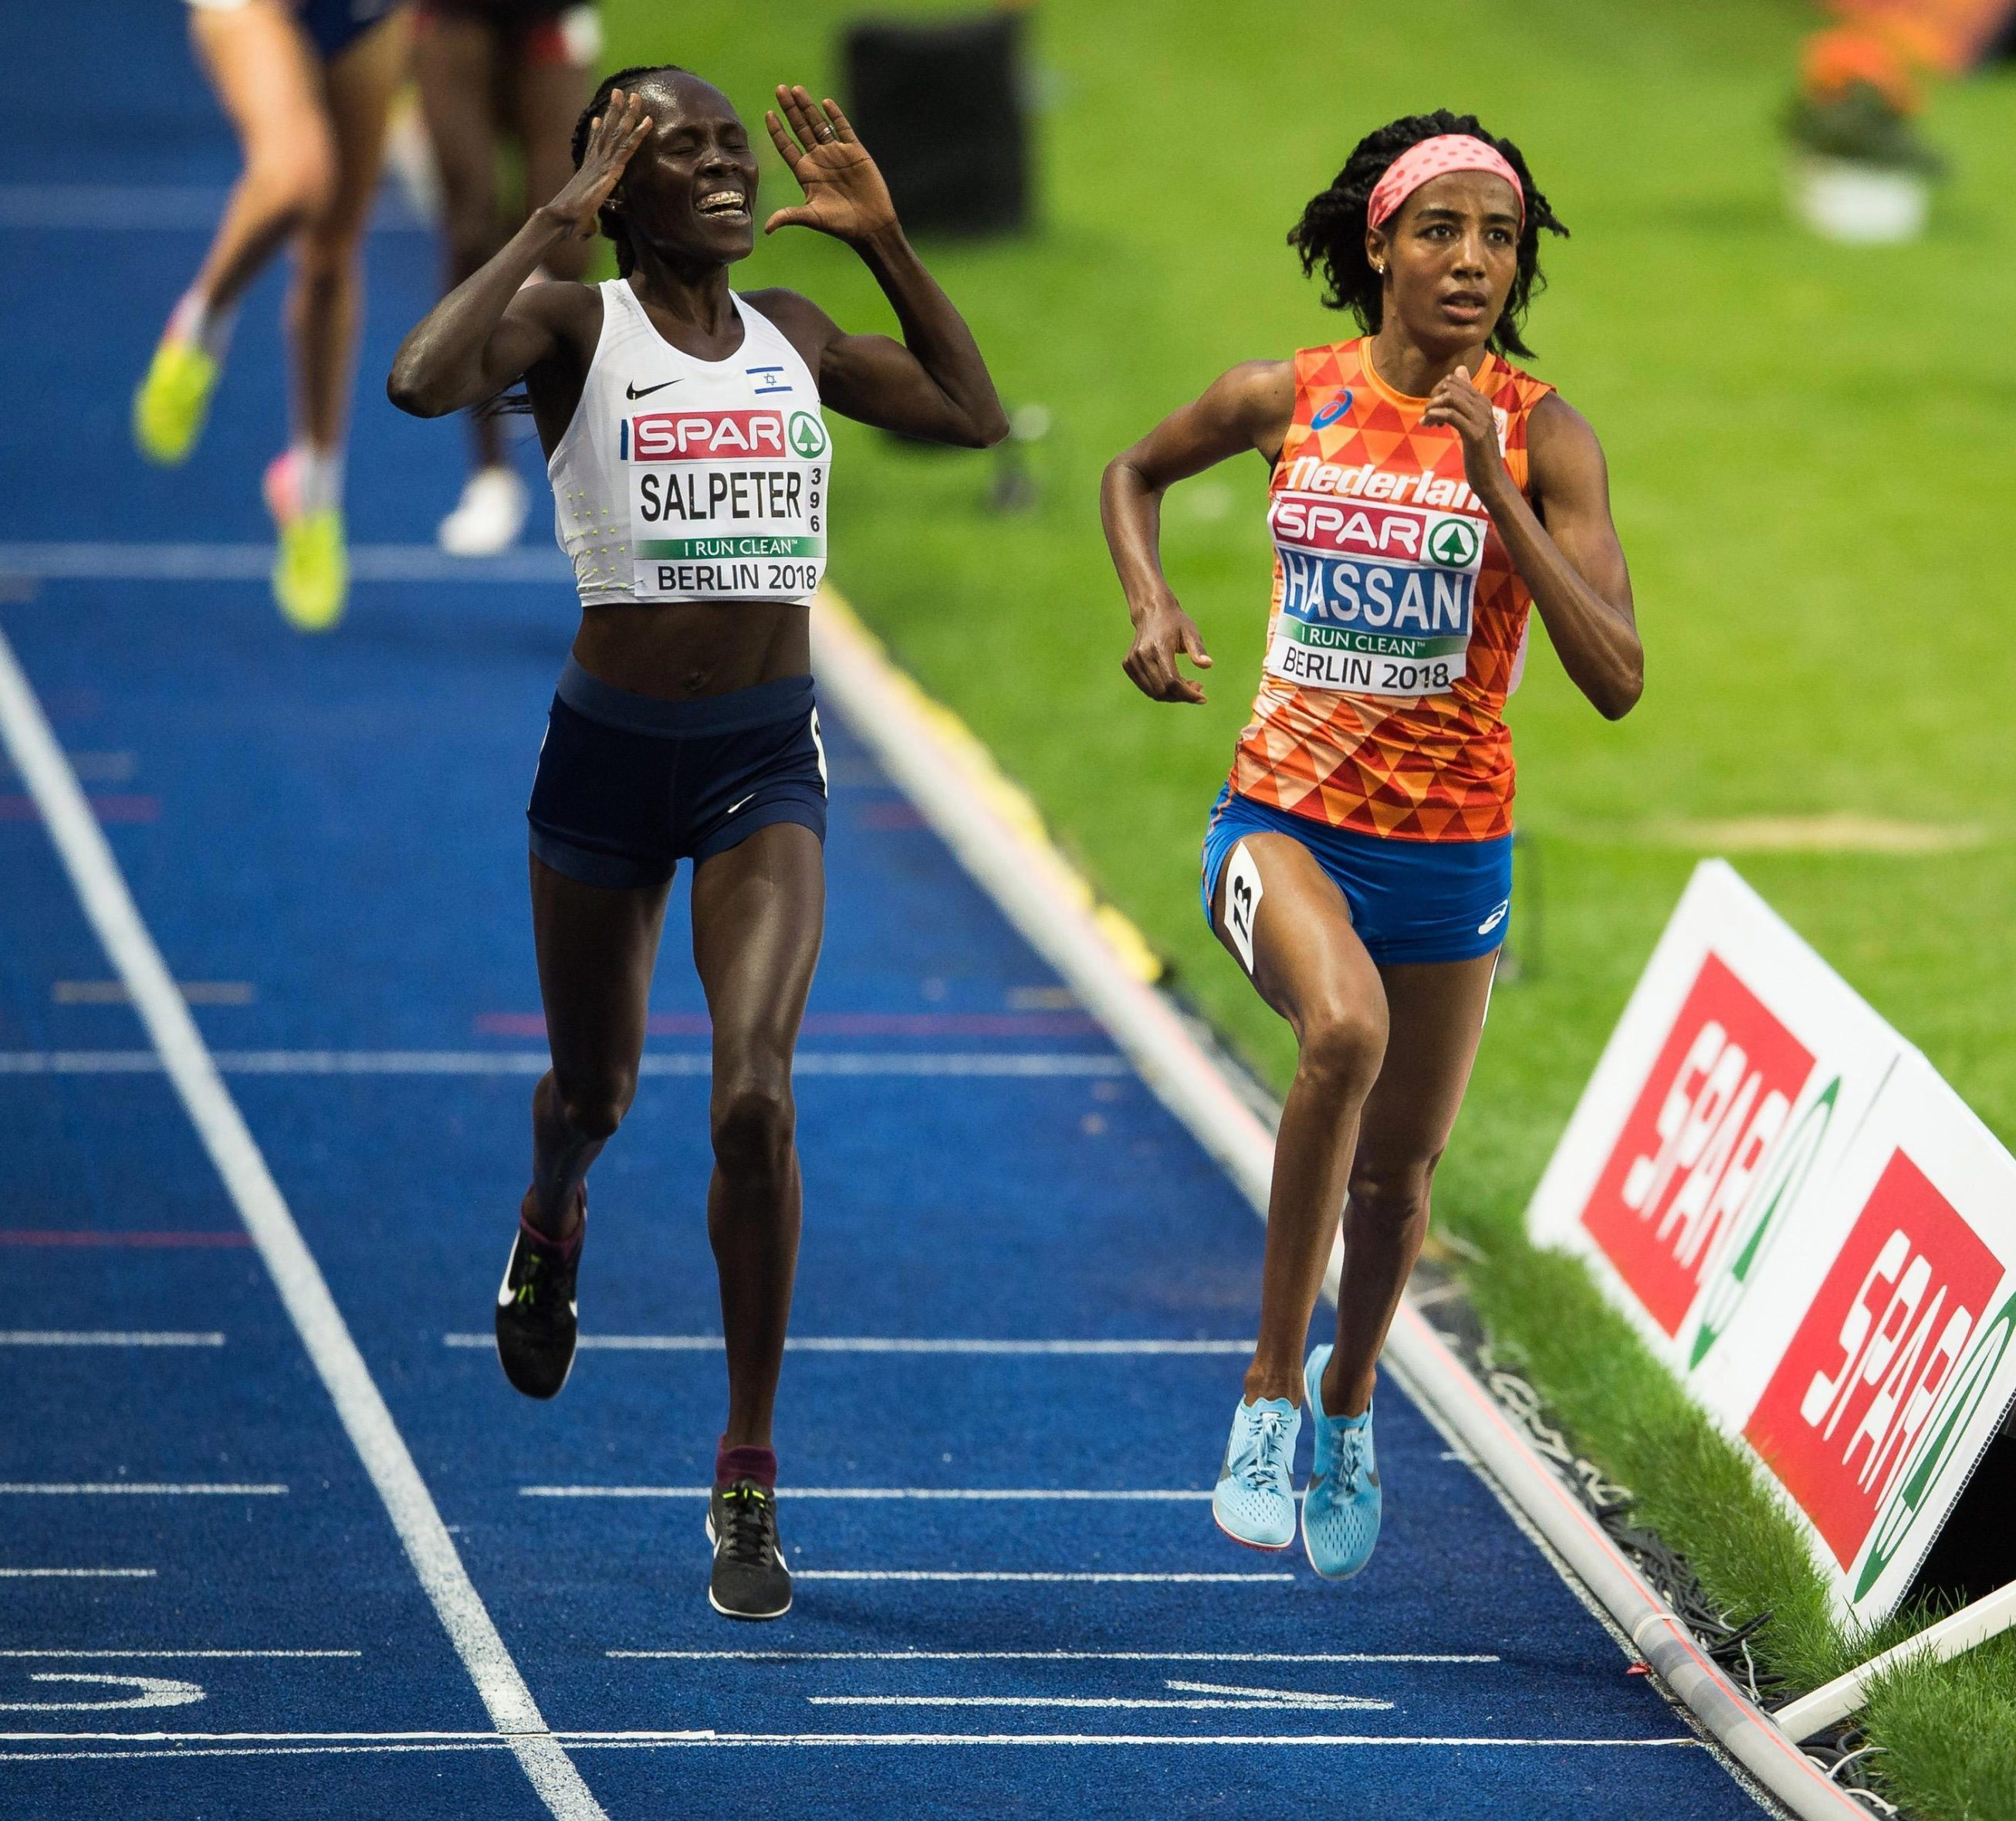 Lonah Salpeter throws up her hands in short-lived joy as she thinks the race is over and that she has won silver